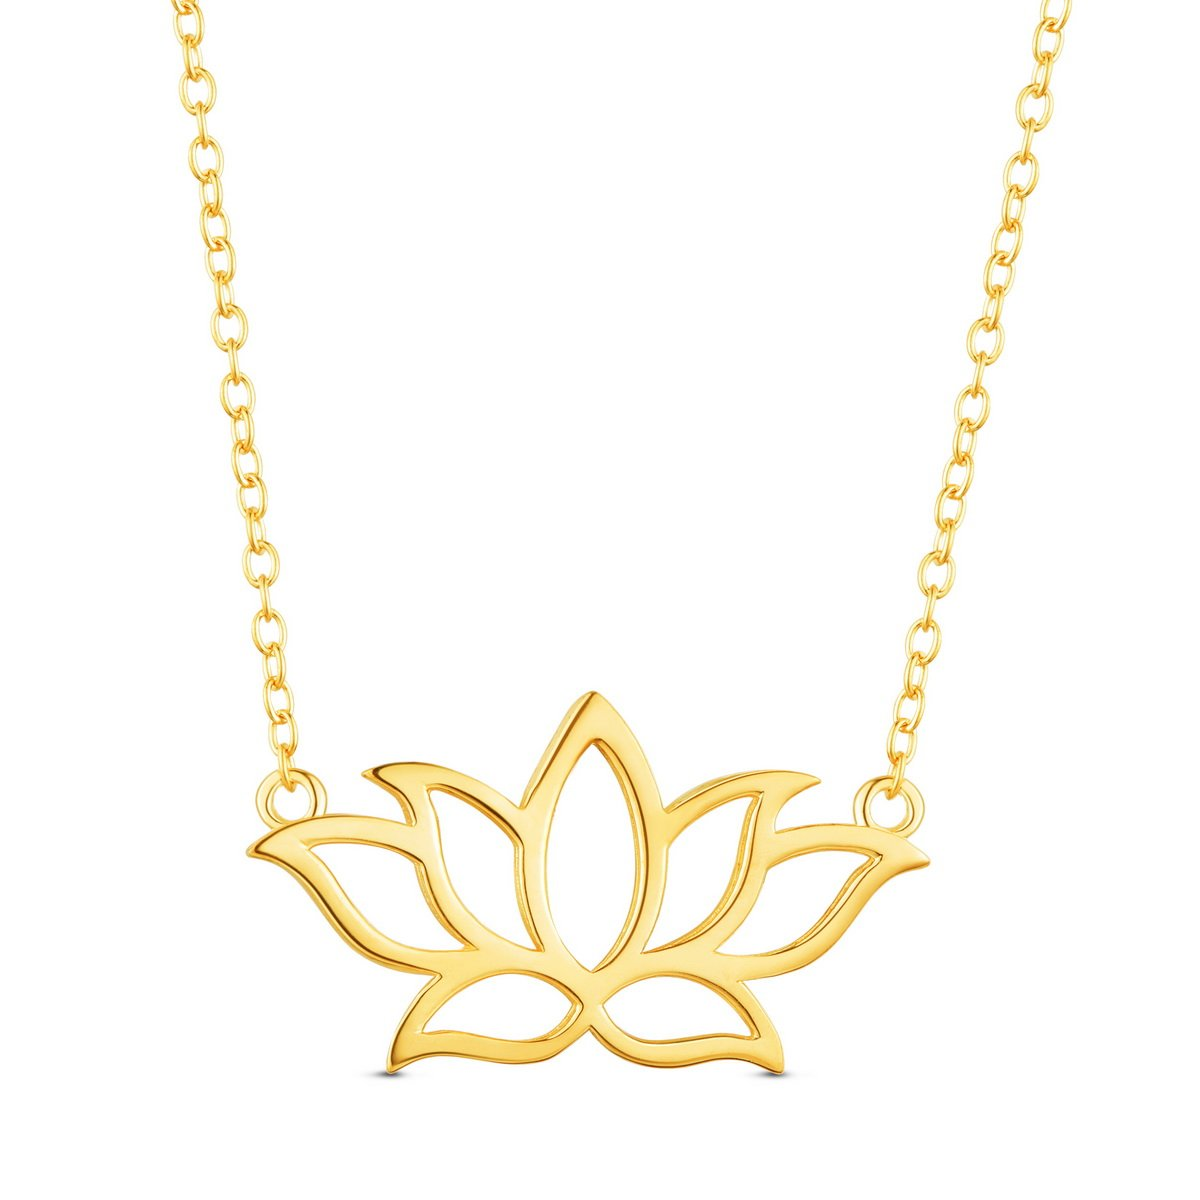 SHEGRACE 925 Sterling Silver Necklace, with Lotus Flower Pendant 17.3 Sweetiee JN37A